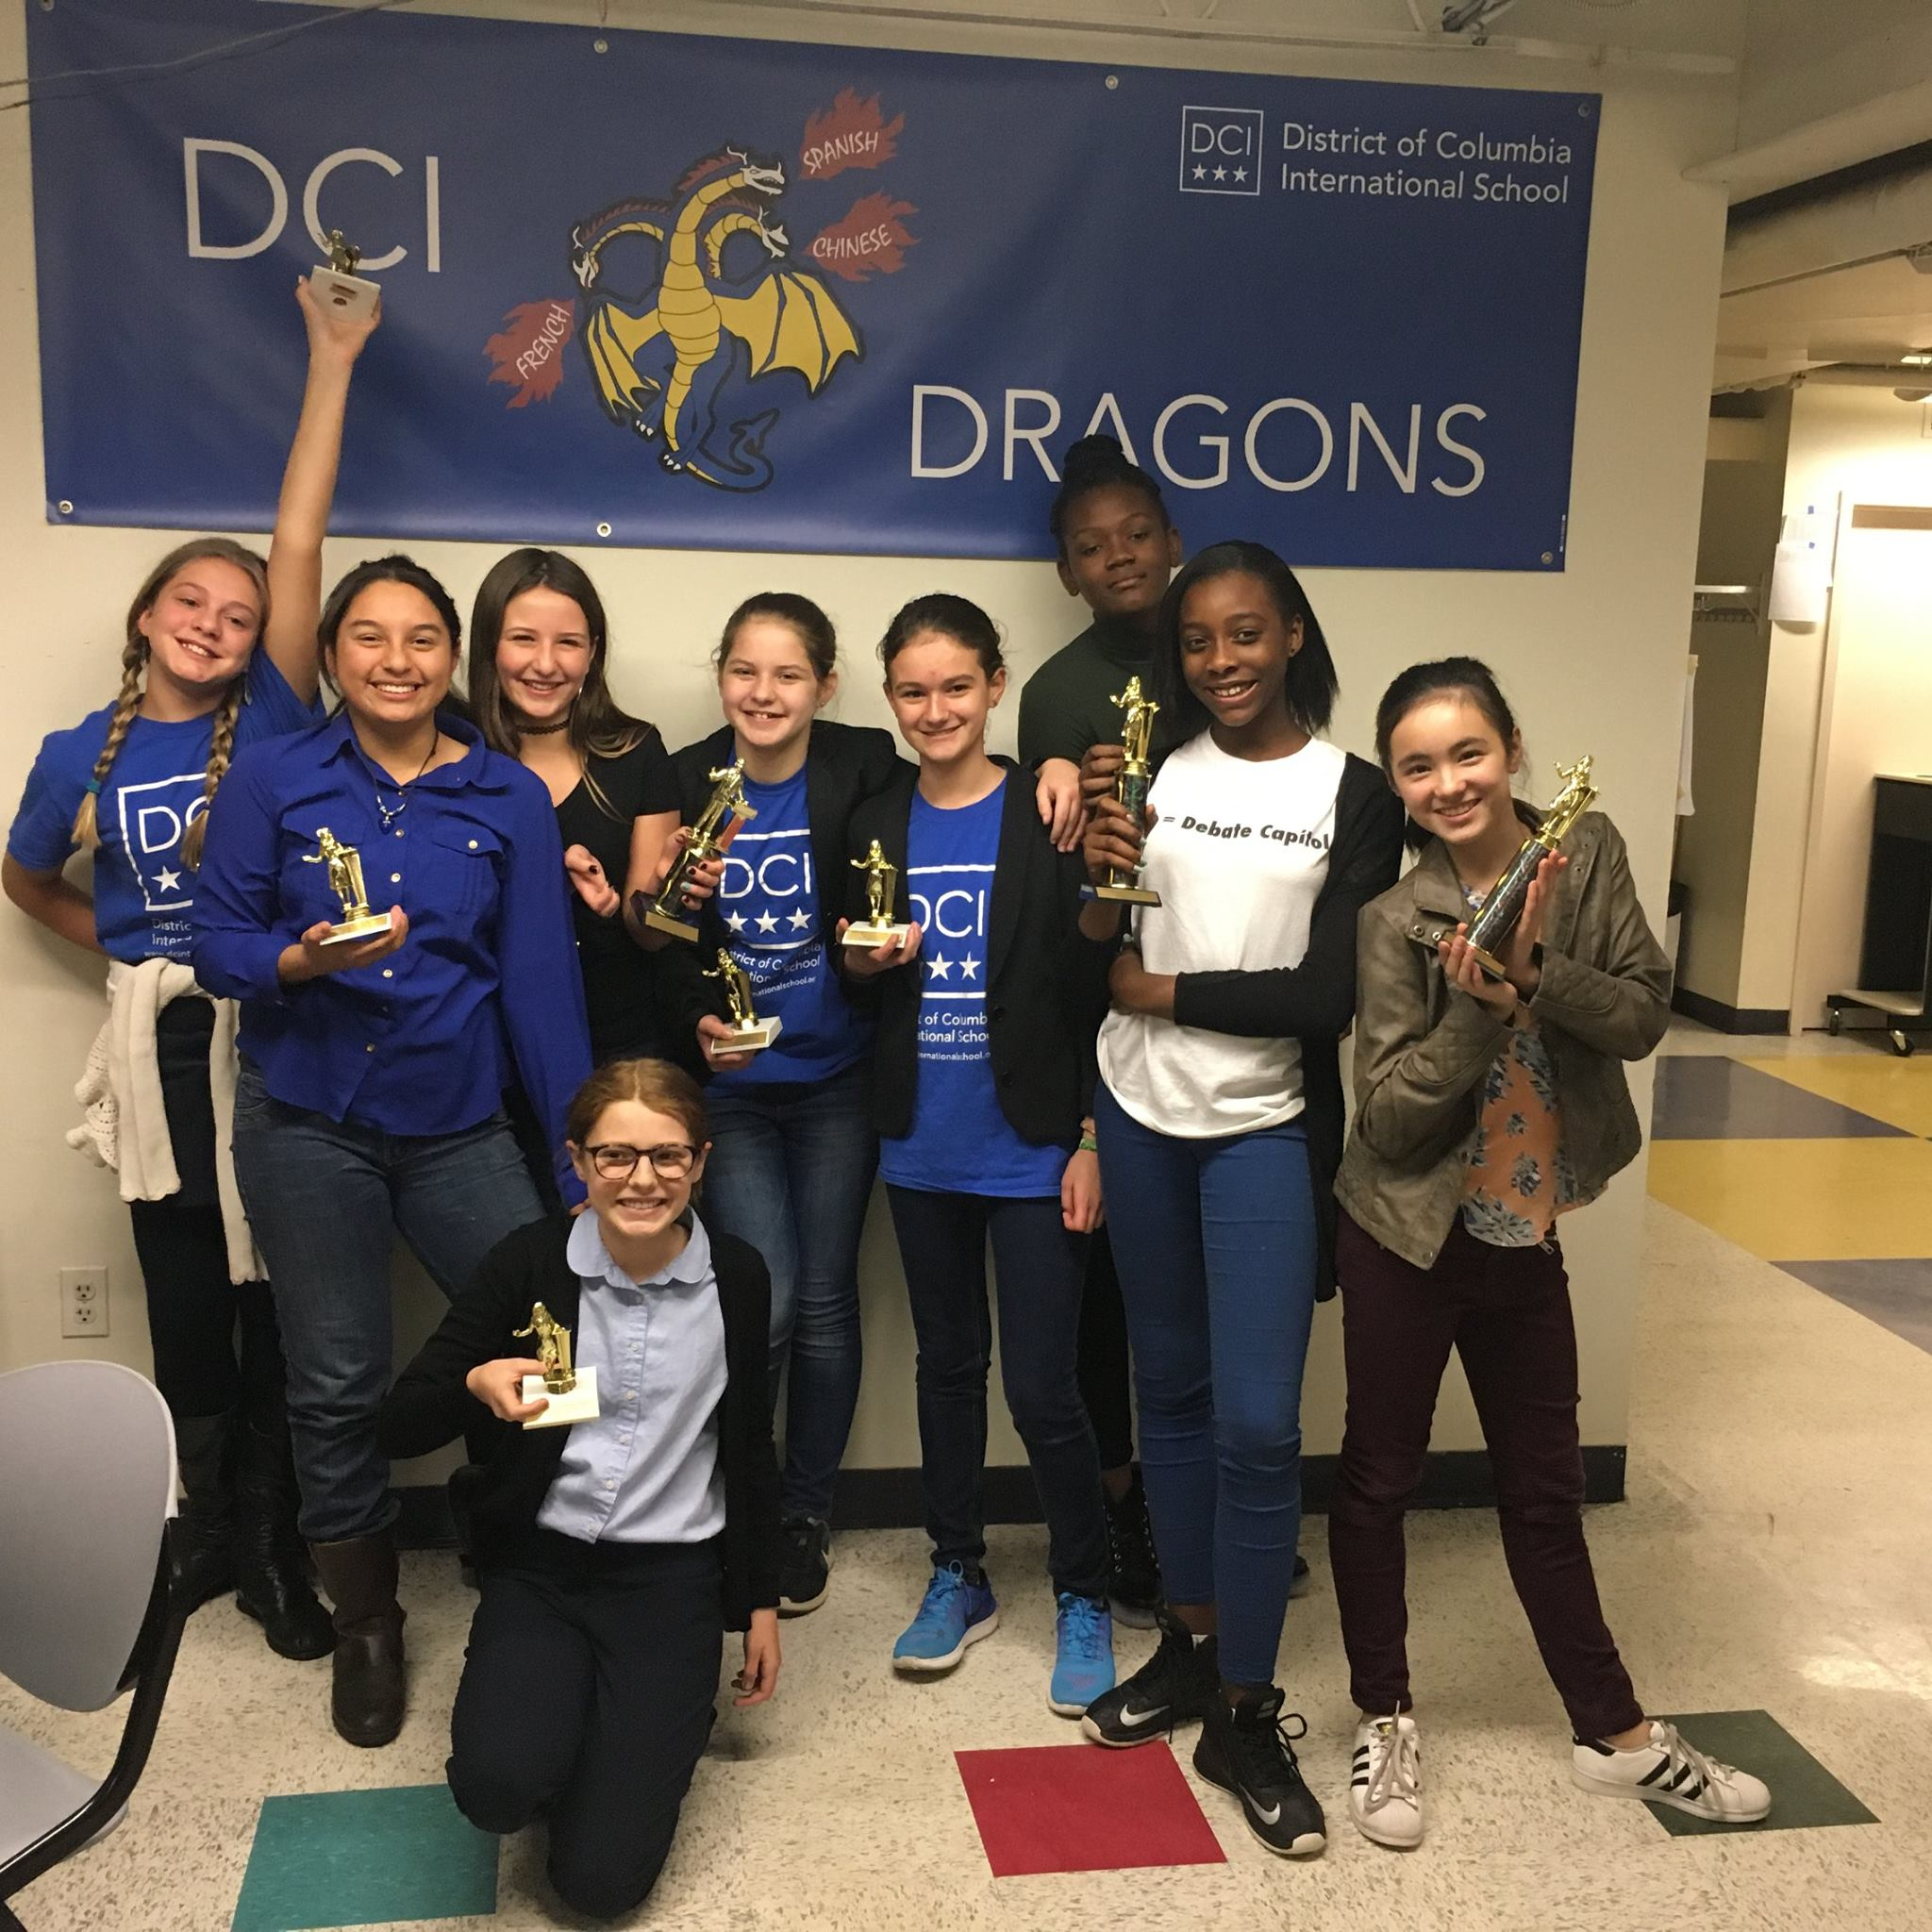 Second DC International Invitational, many first time trophy winners